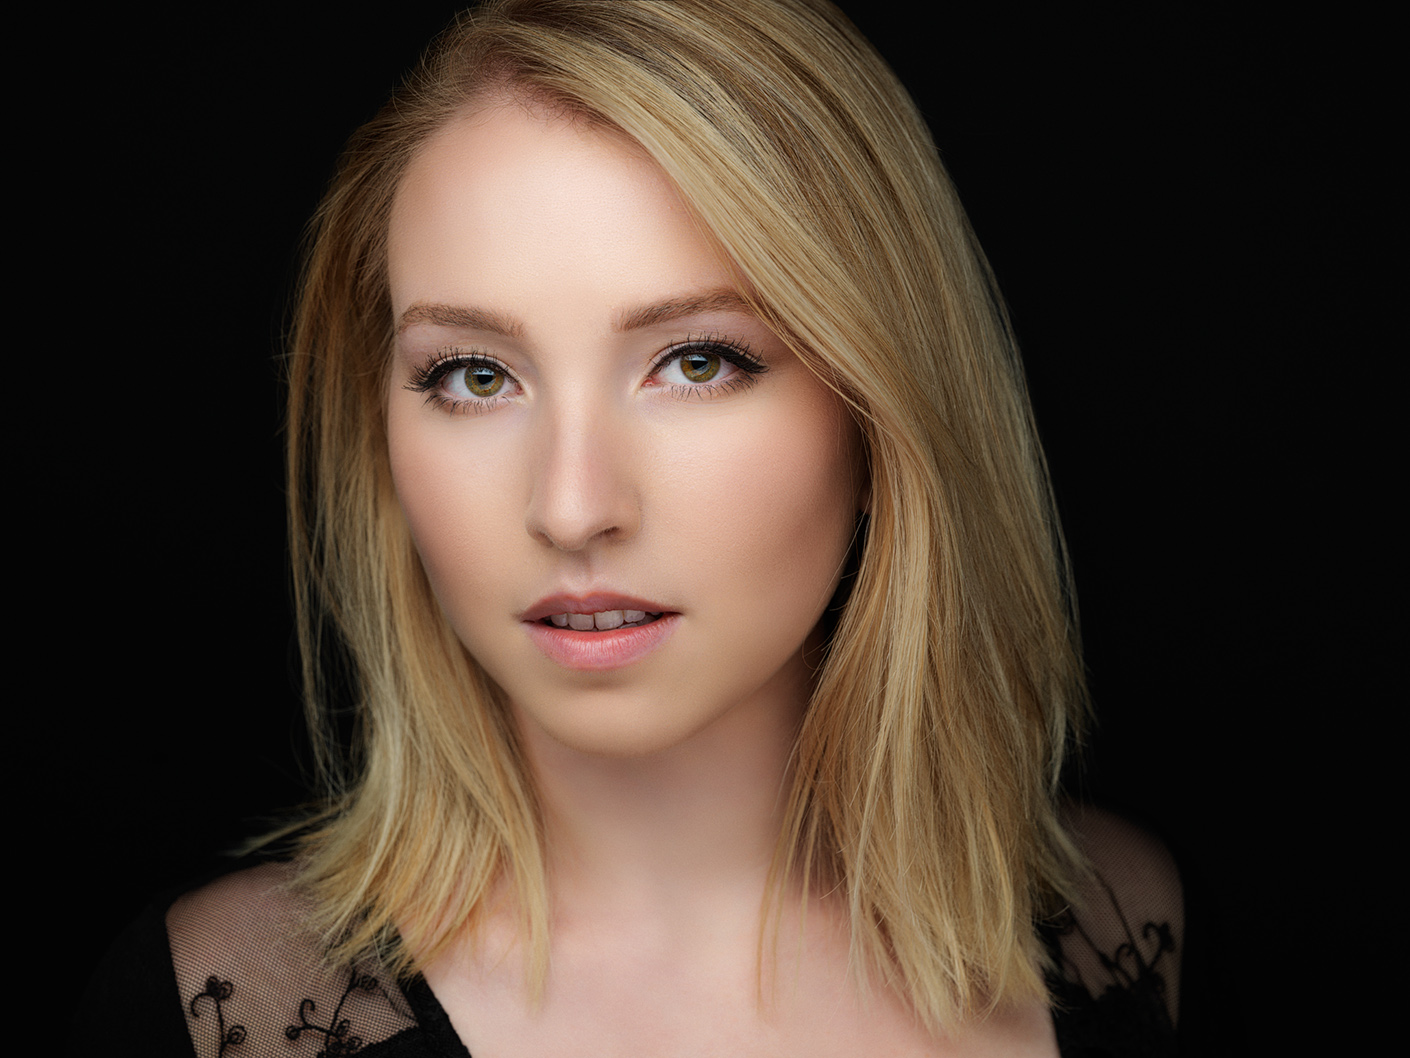 makeup beauty portrait, Riva, headshot in Montreal by Montreal photographer Vadim Daniel